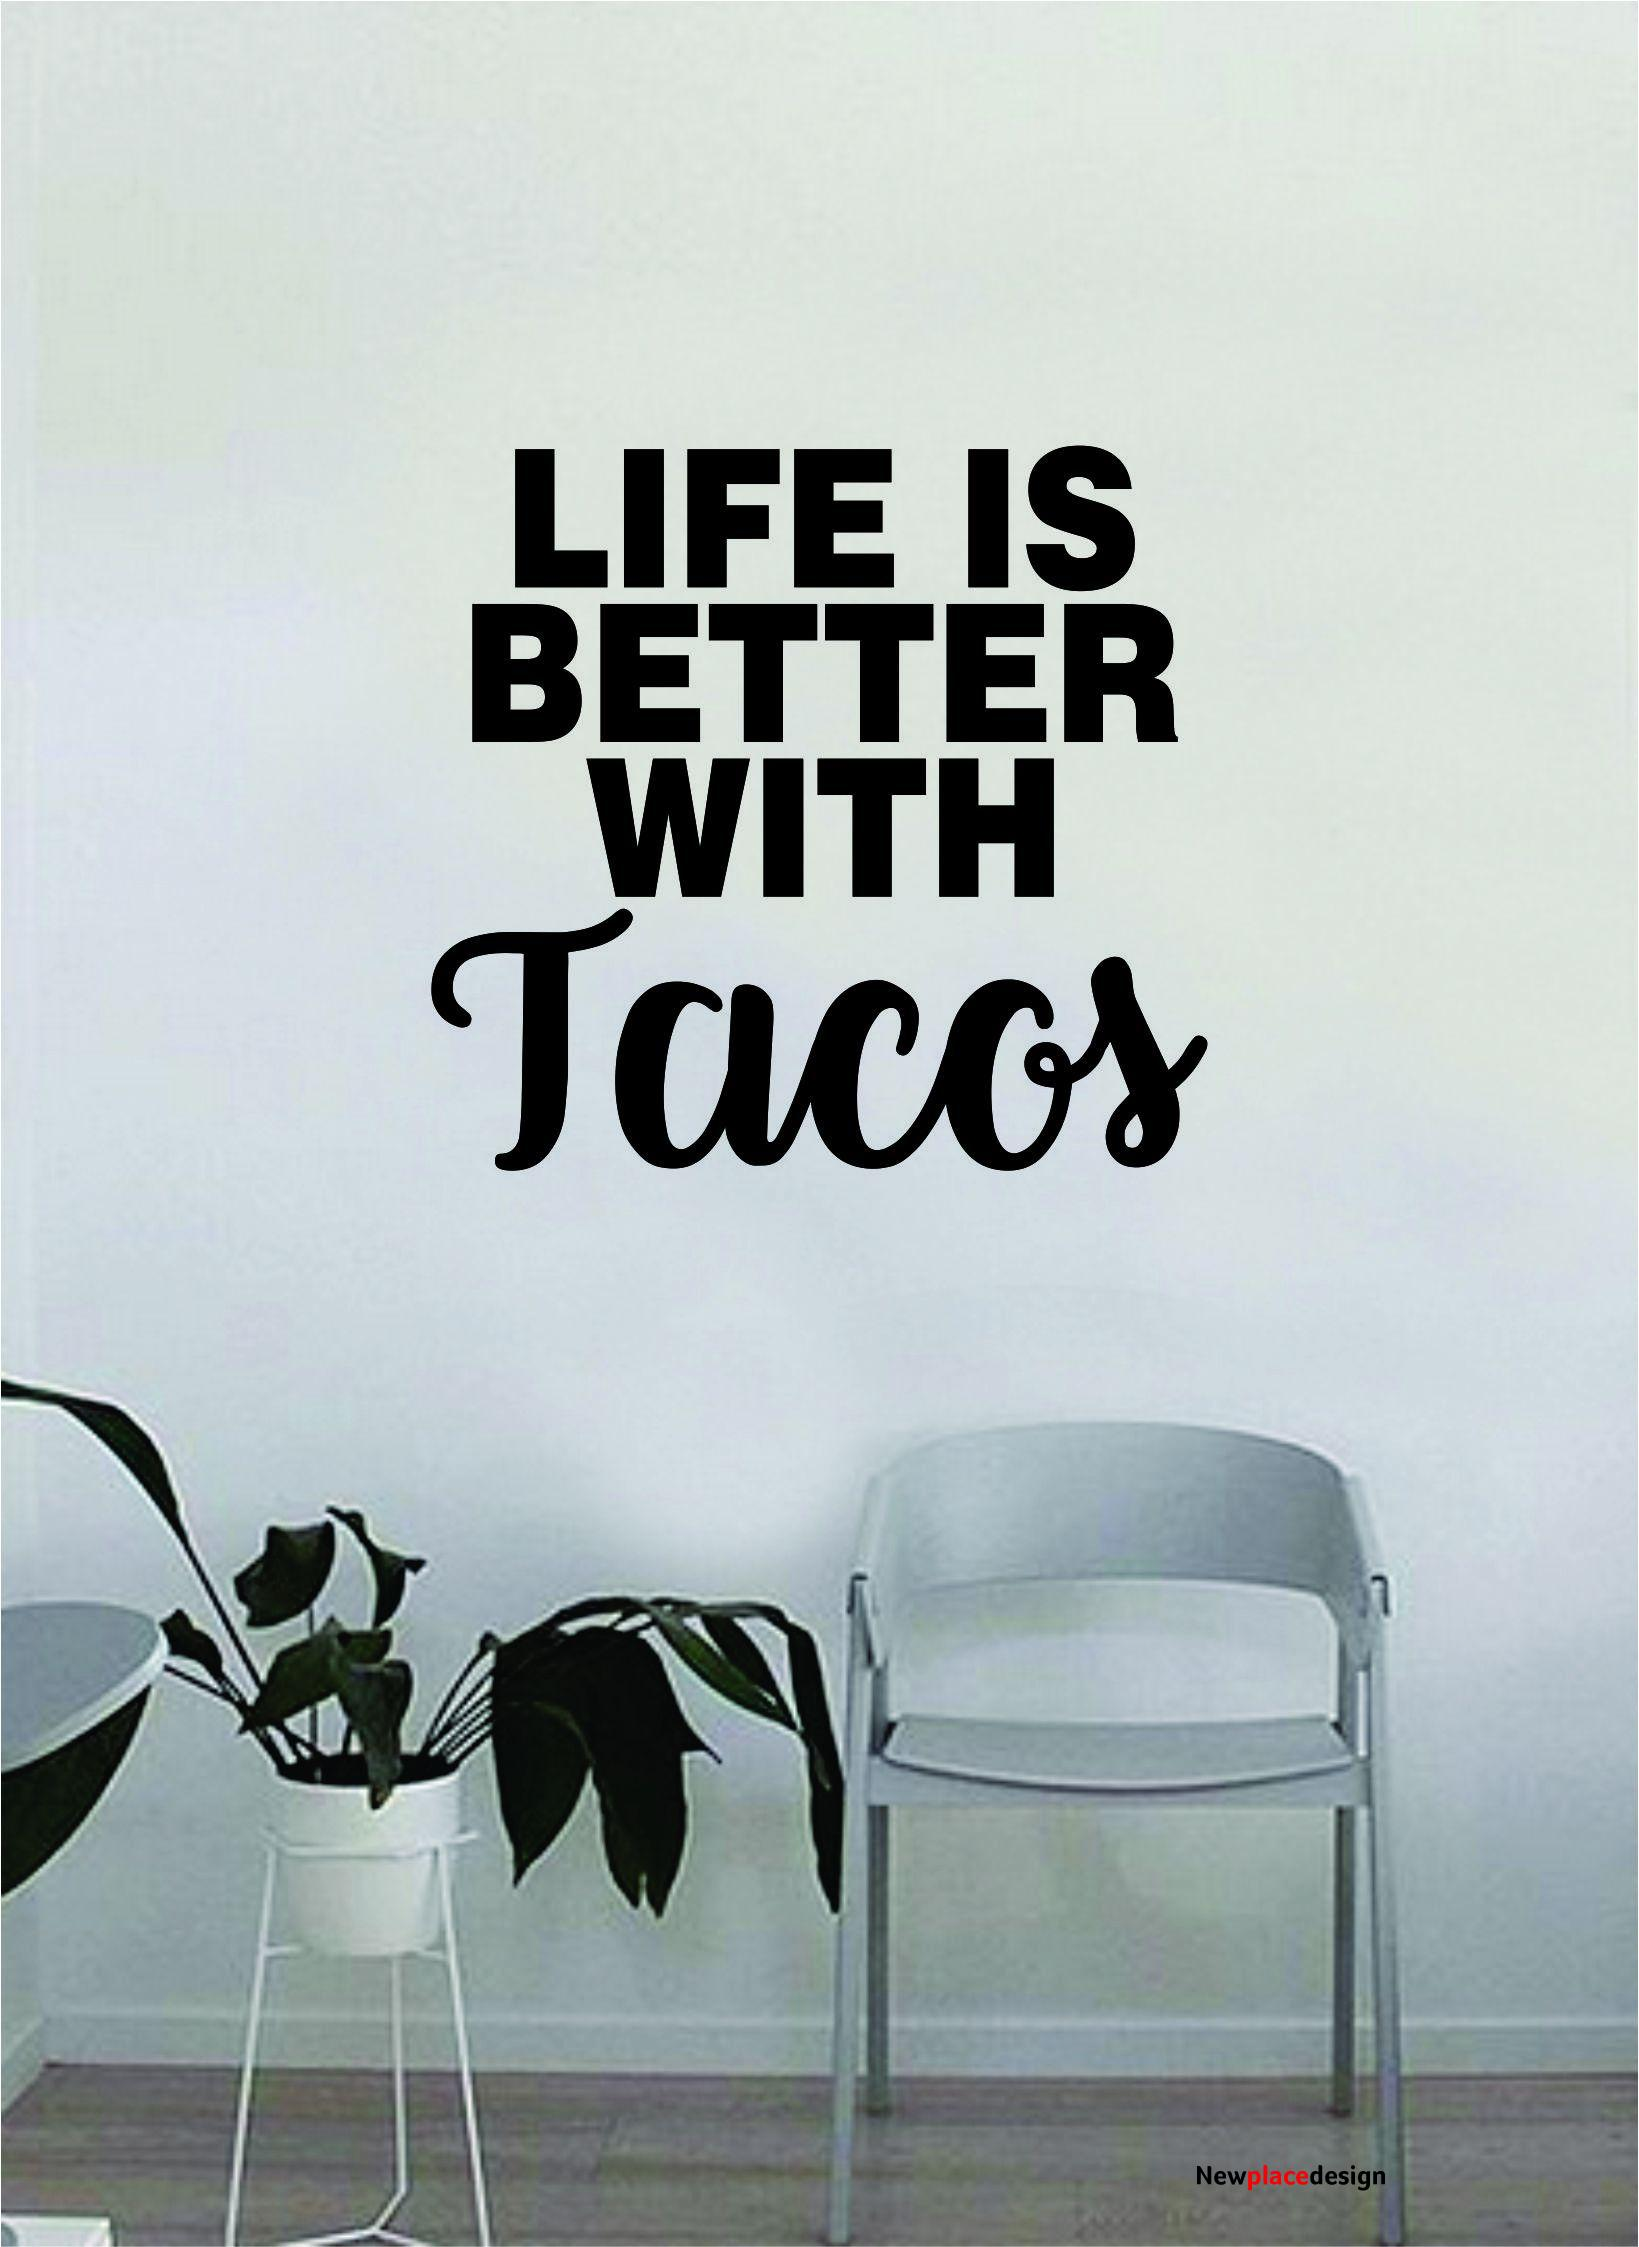 Life is Better with Tacos Quote Wall Decal Sticker Bedroom Home Room Art Vinyl Inspirational Decor Funny Teen Mexican Food - white